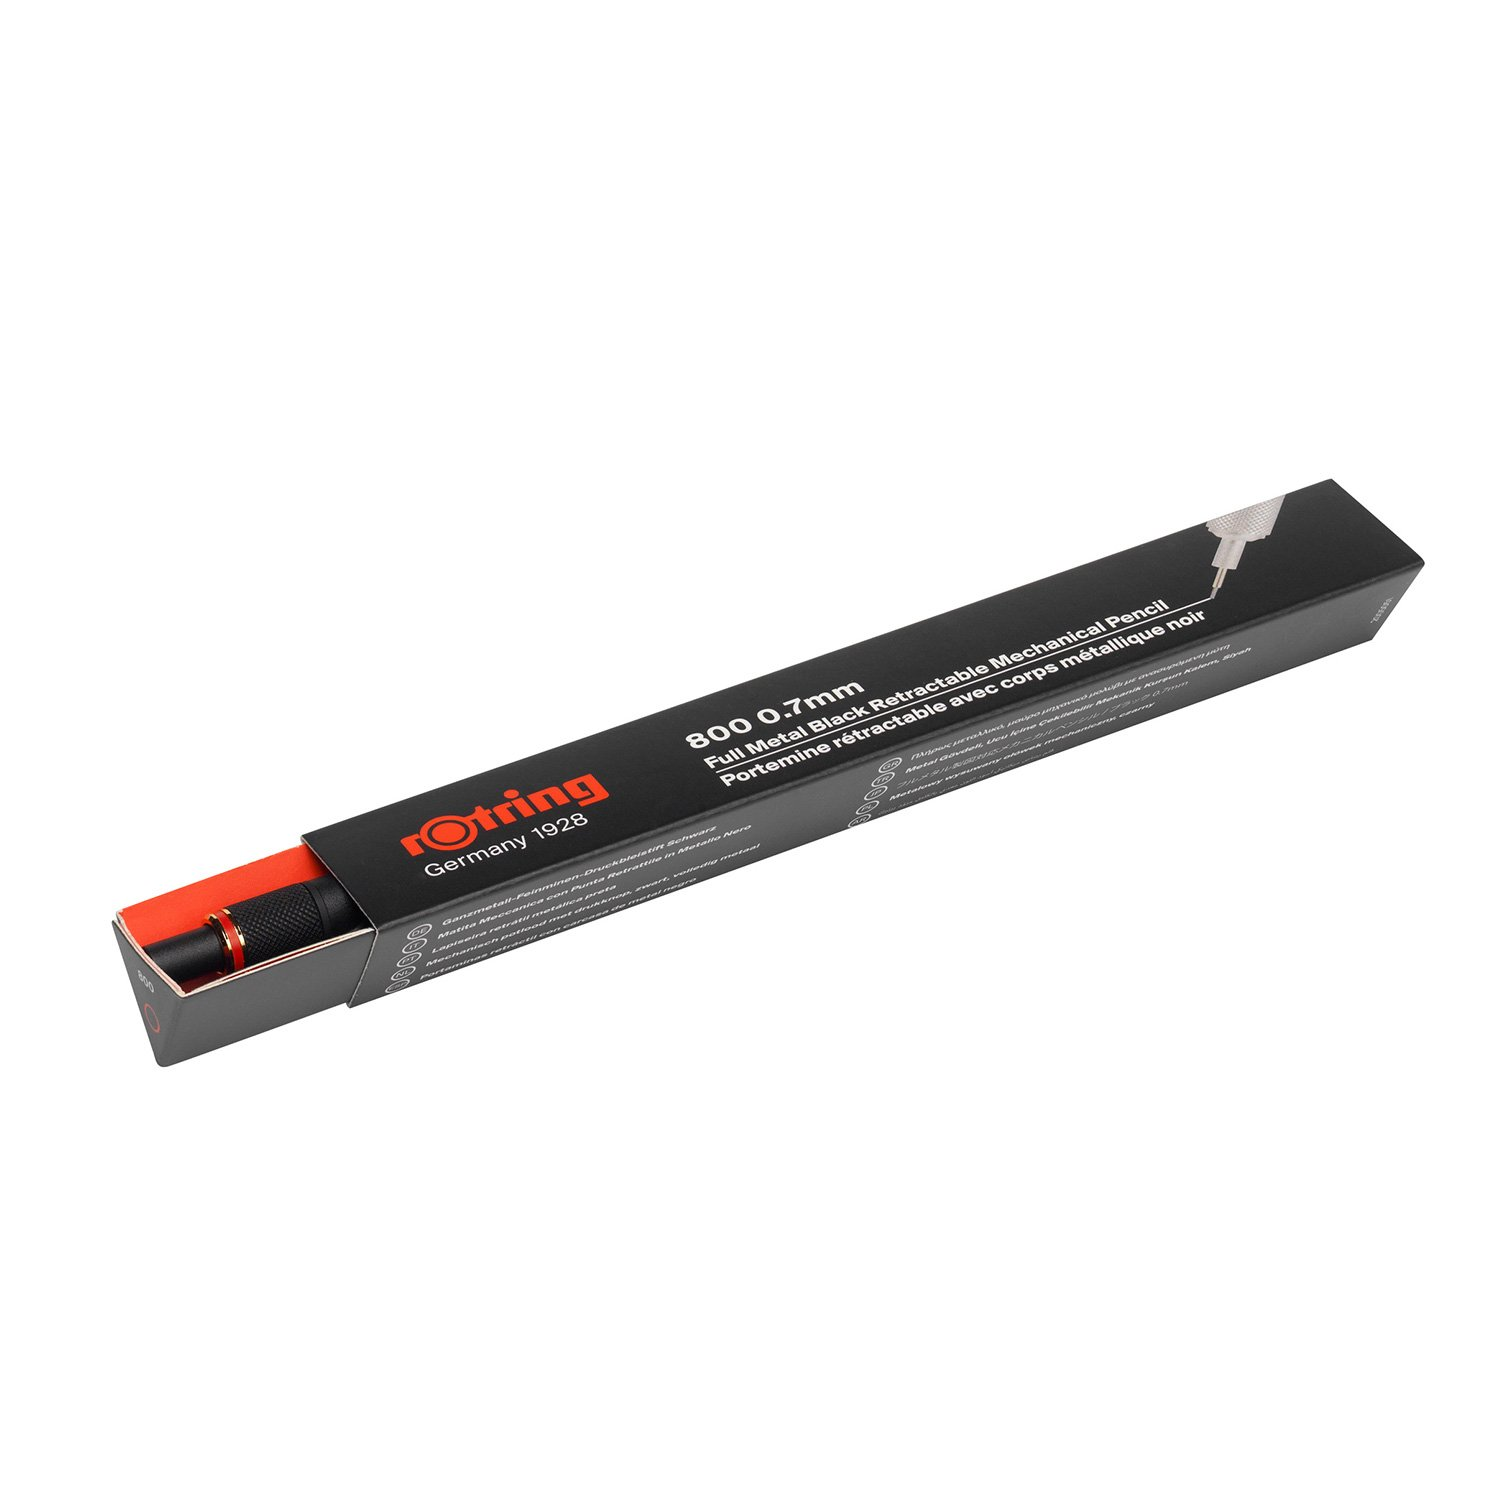 Rotring 800 Mechanical Pencil 0.7Mm Black by Rotring (Image #5)